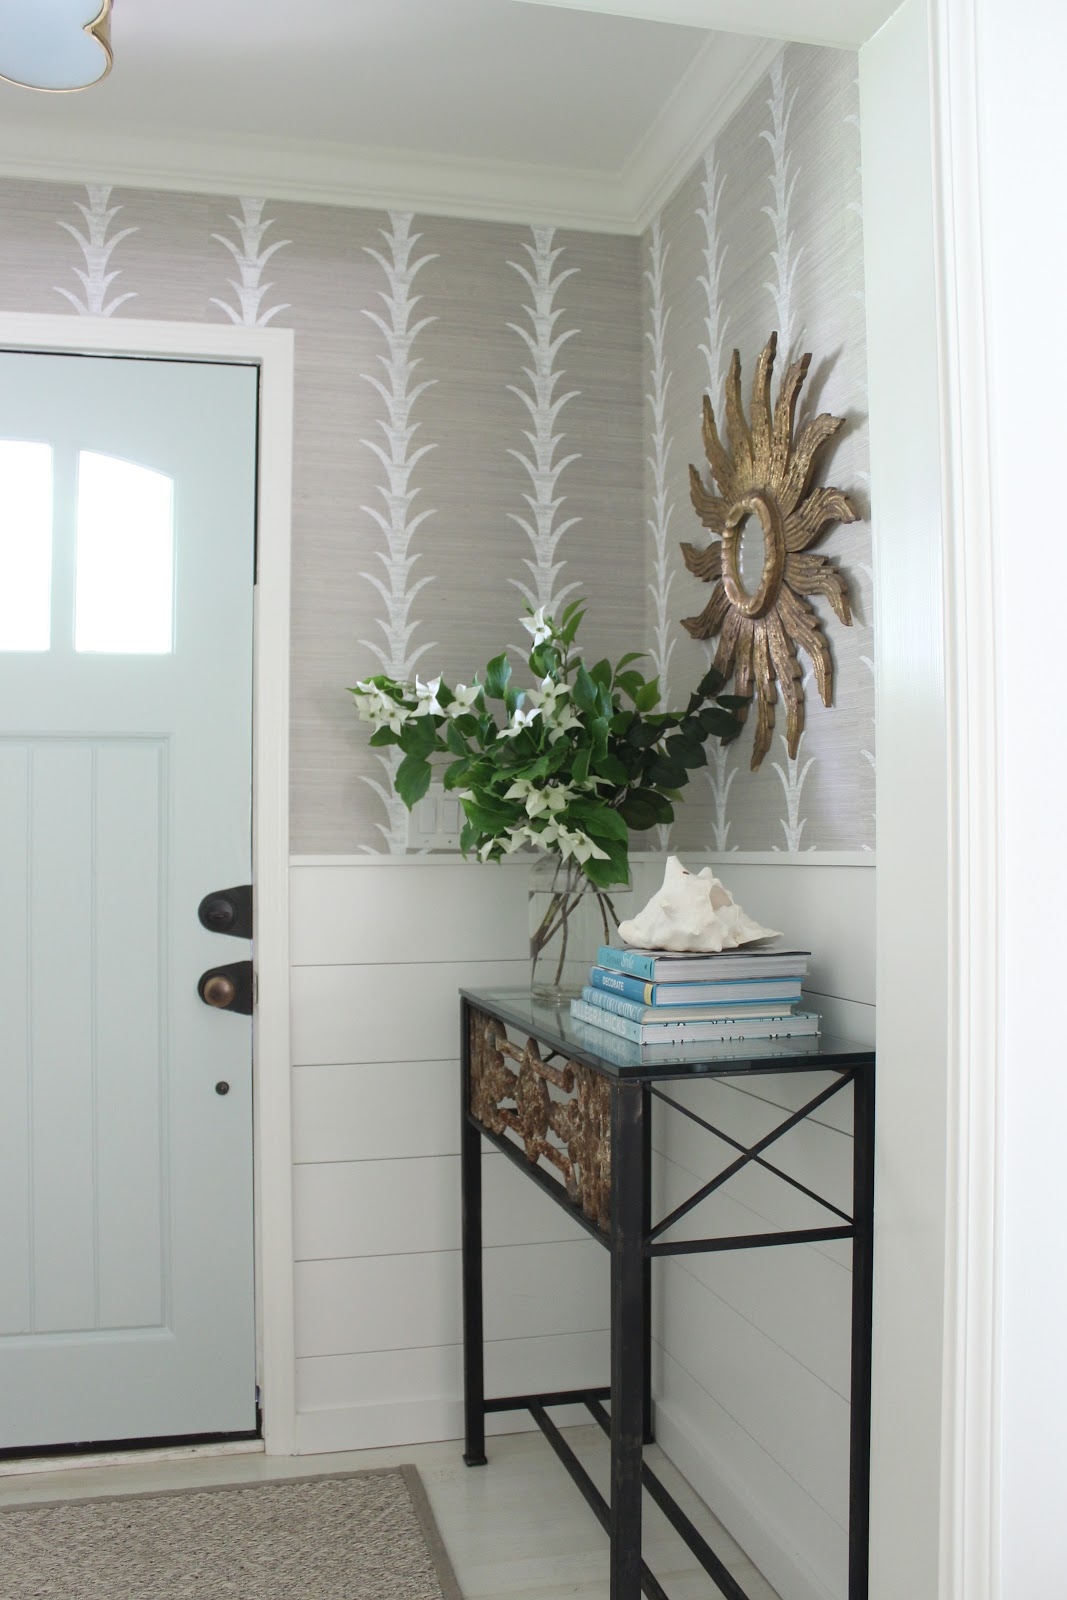 Design indulgence: my foyer reveal